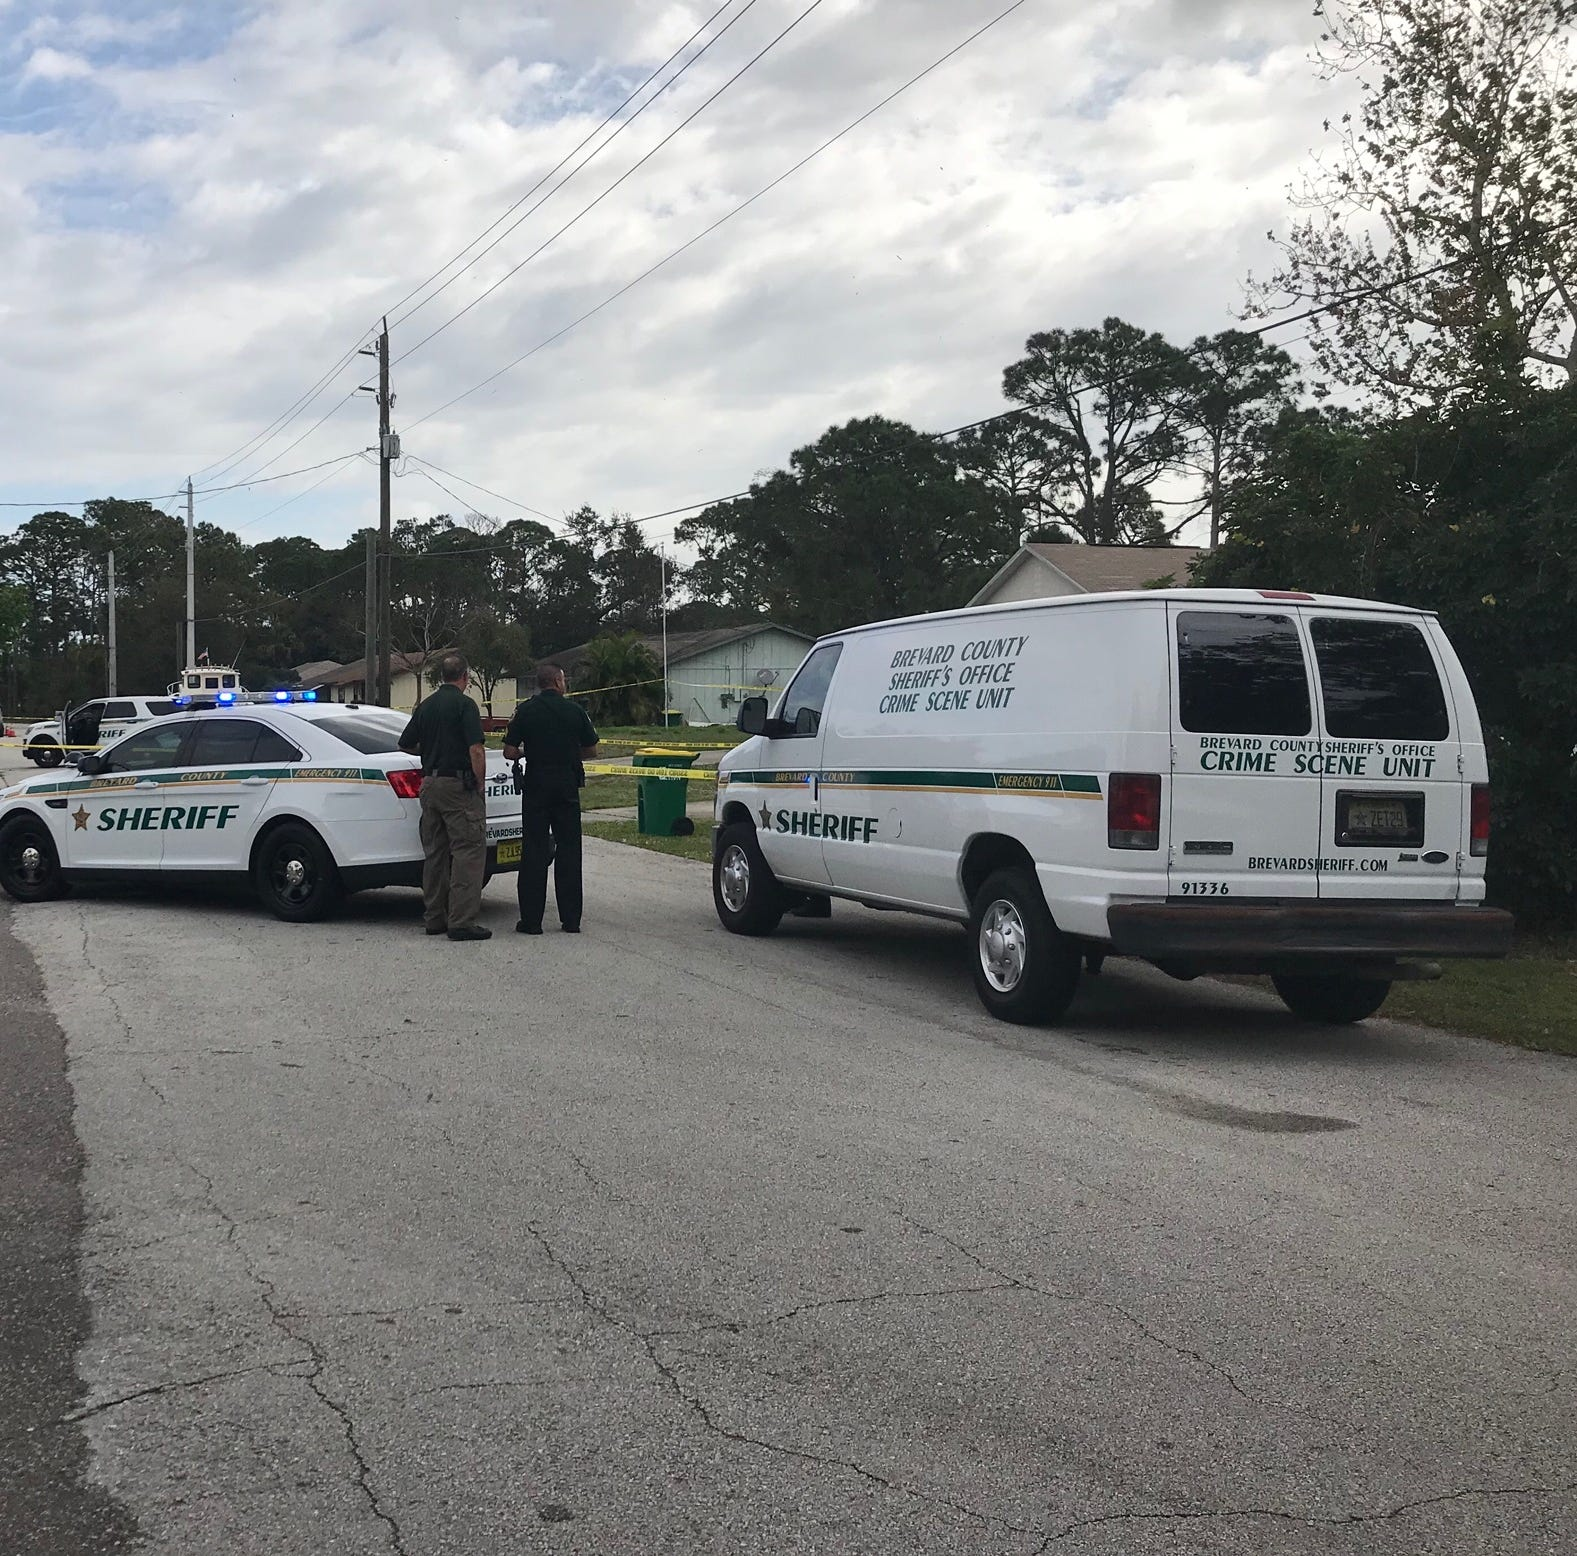 Three bodies in less than six hours; Investigators working unrelated cases from Titusville to Rockledge